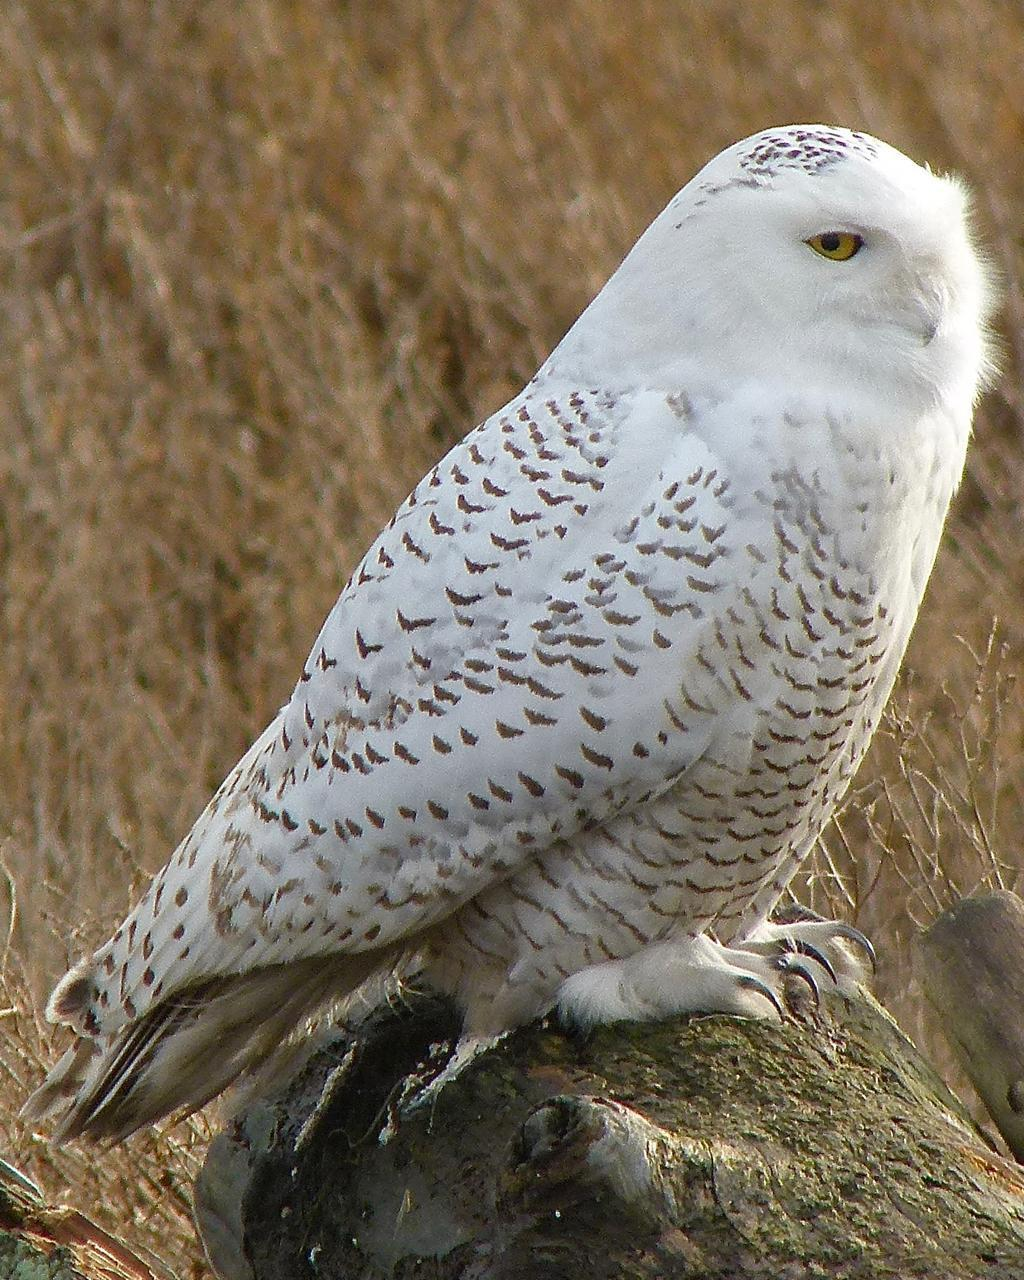 Snowy Owl Photo by Brian Avent